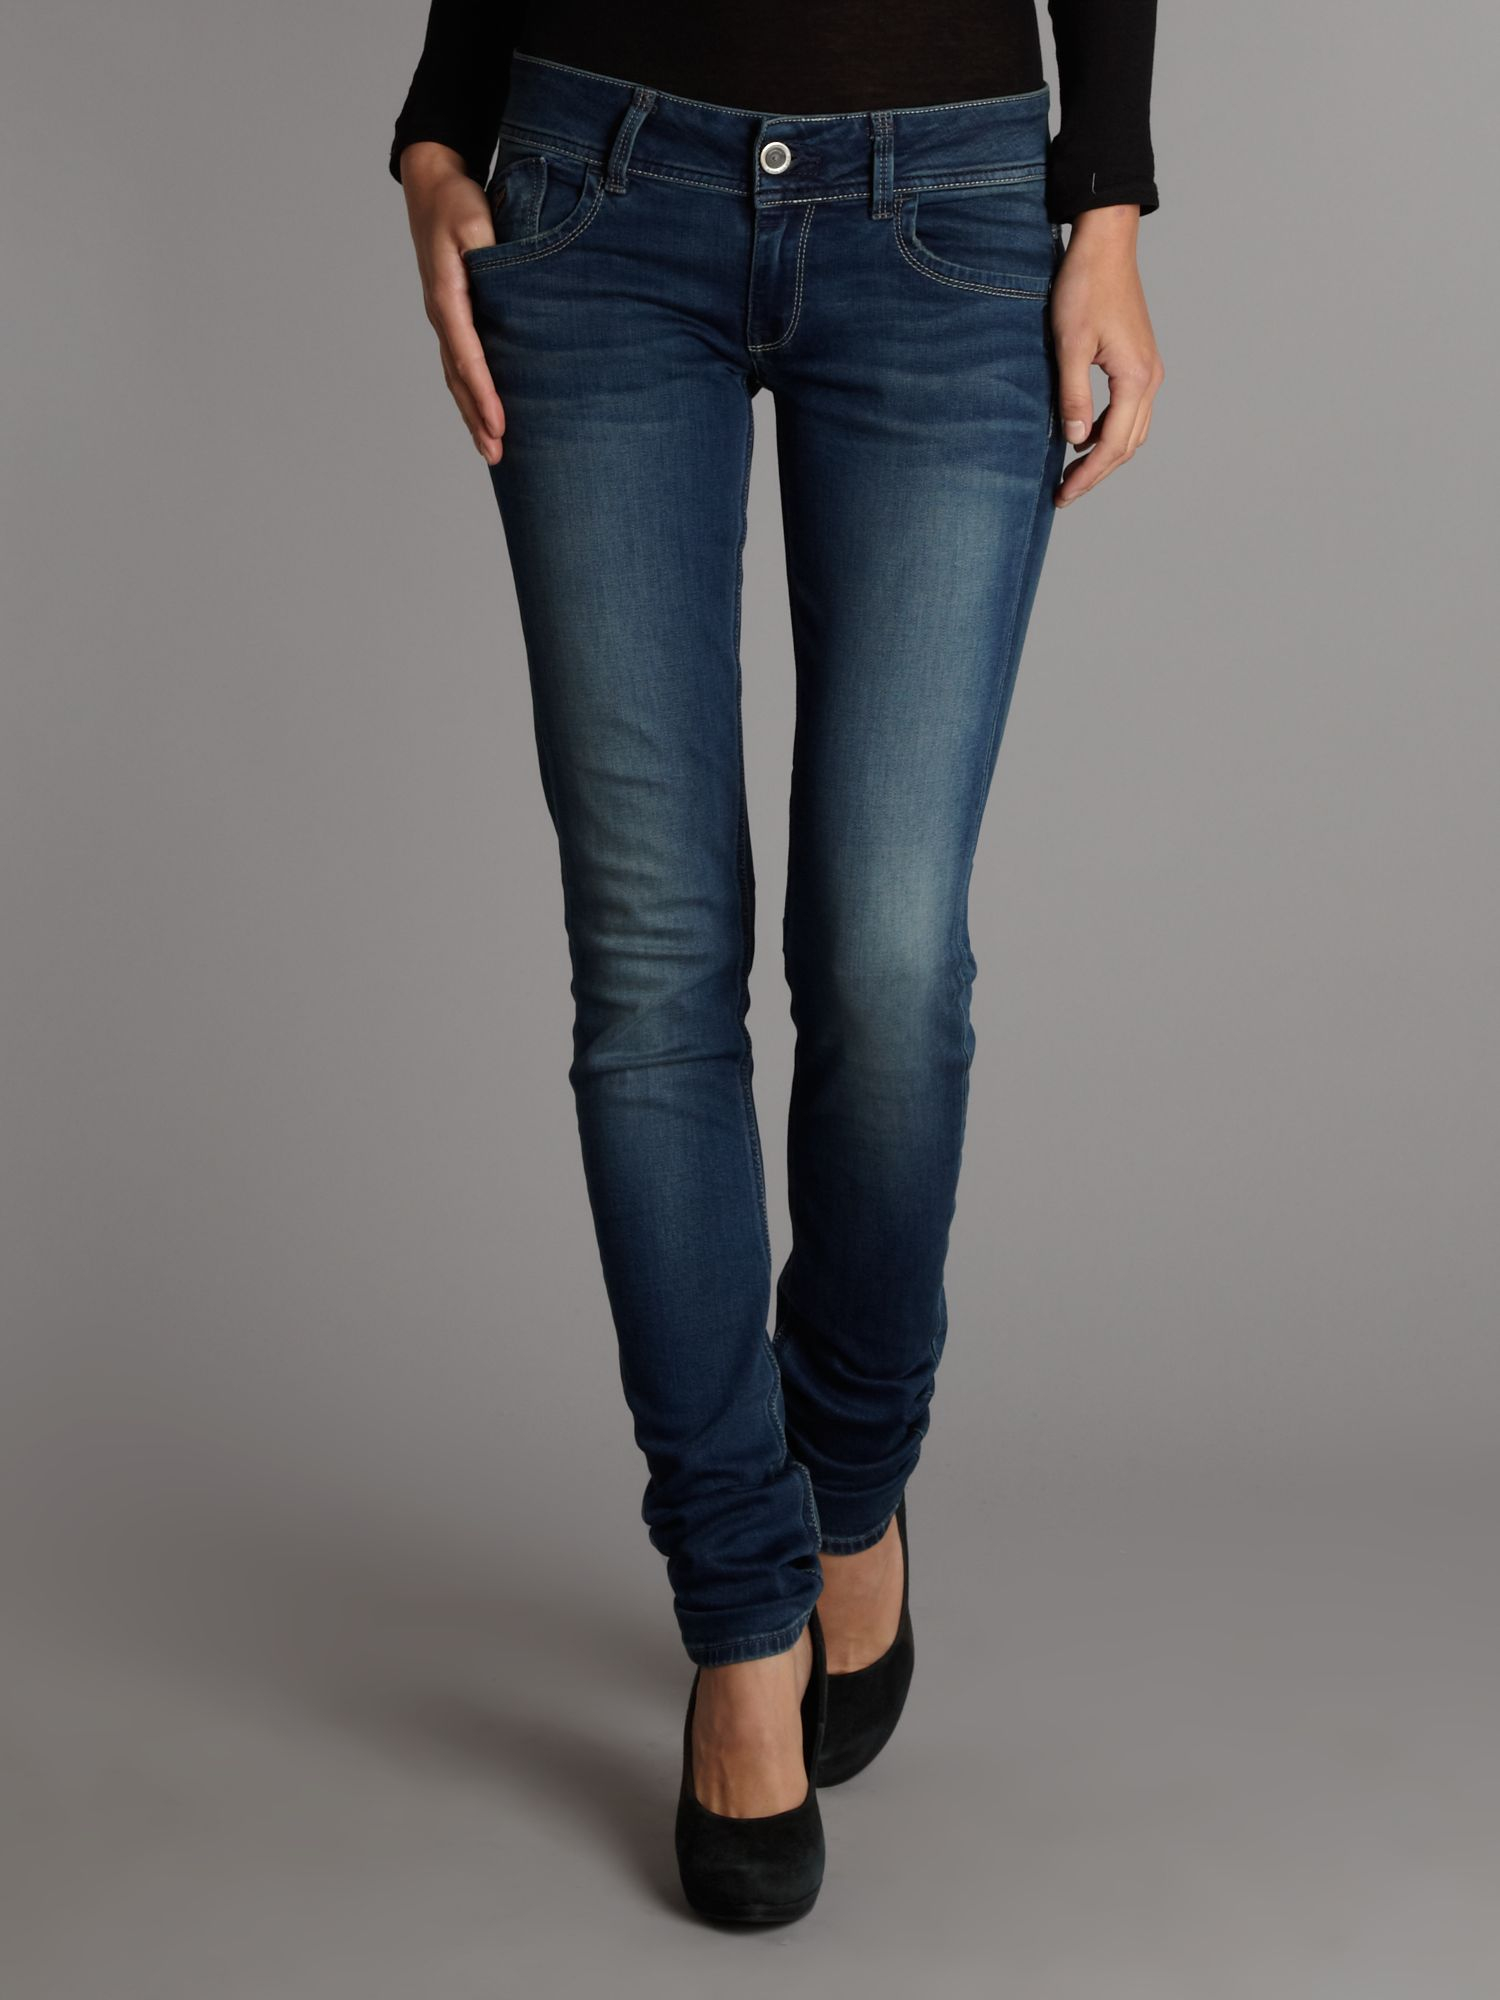 G Star Raw Lynn Skinny Curve Leg Jean In Blue Lyst